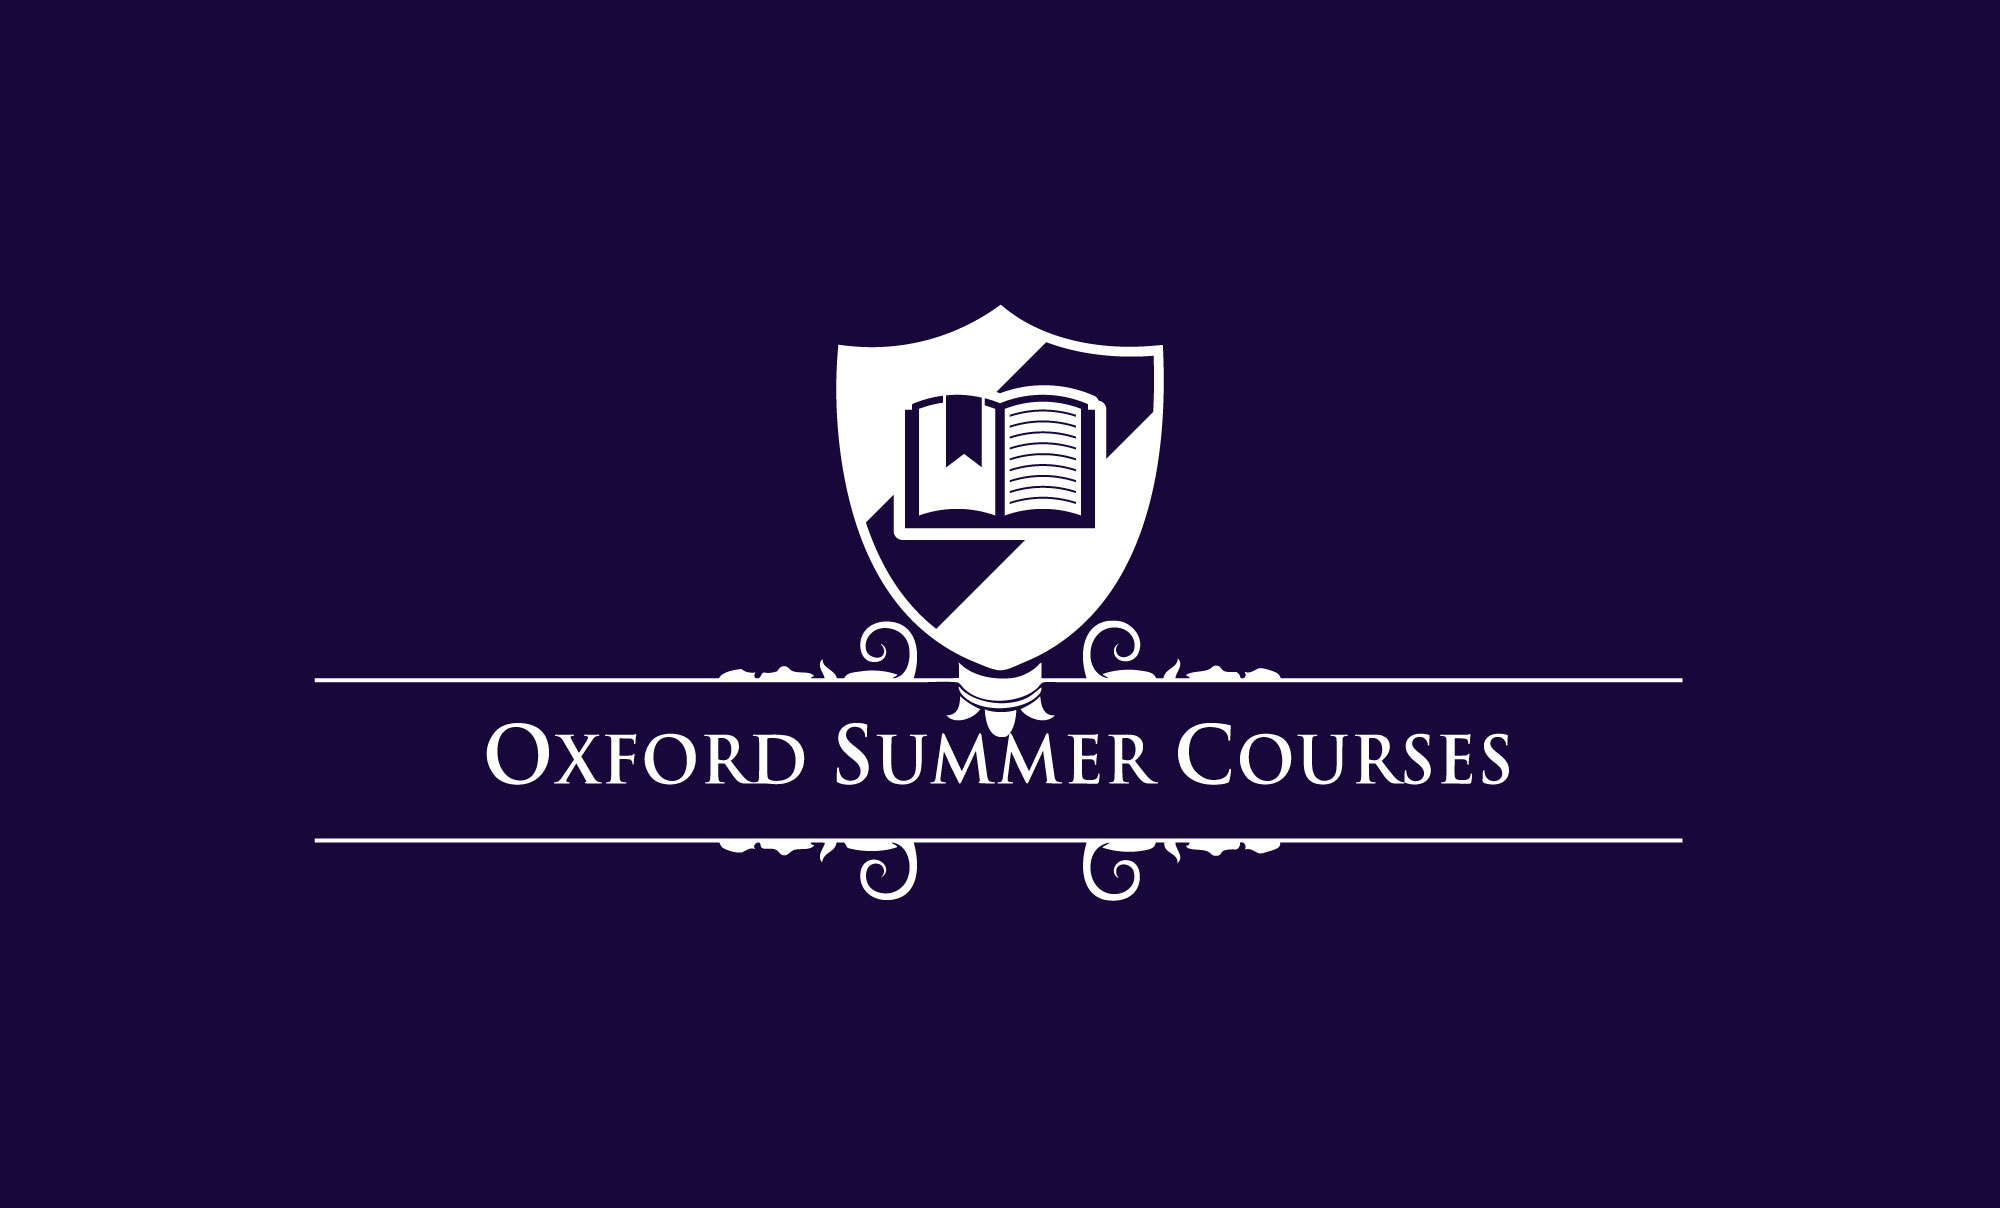 Oxford Summer Courses